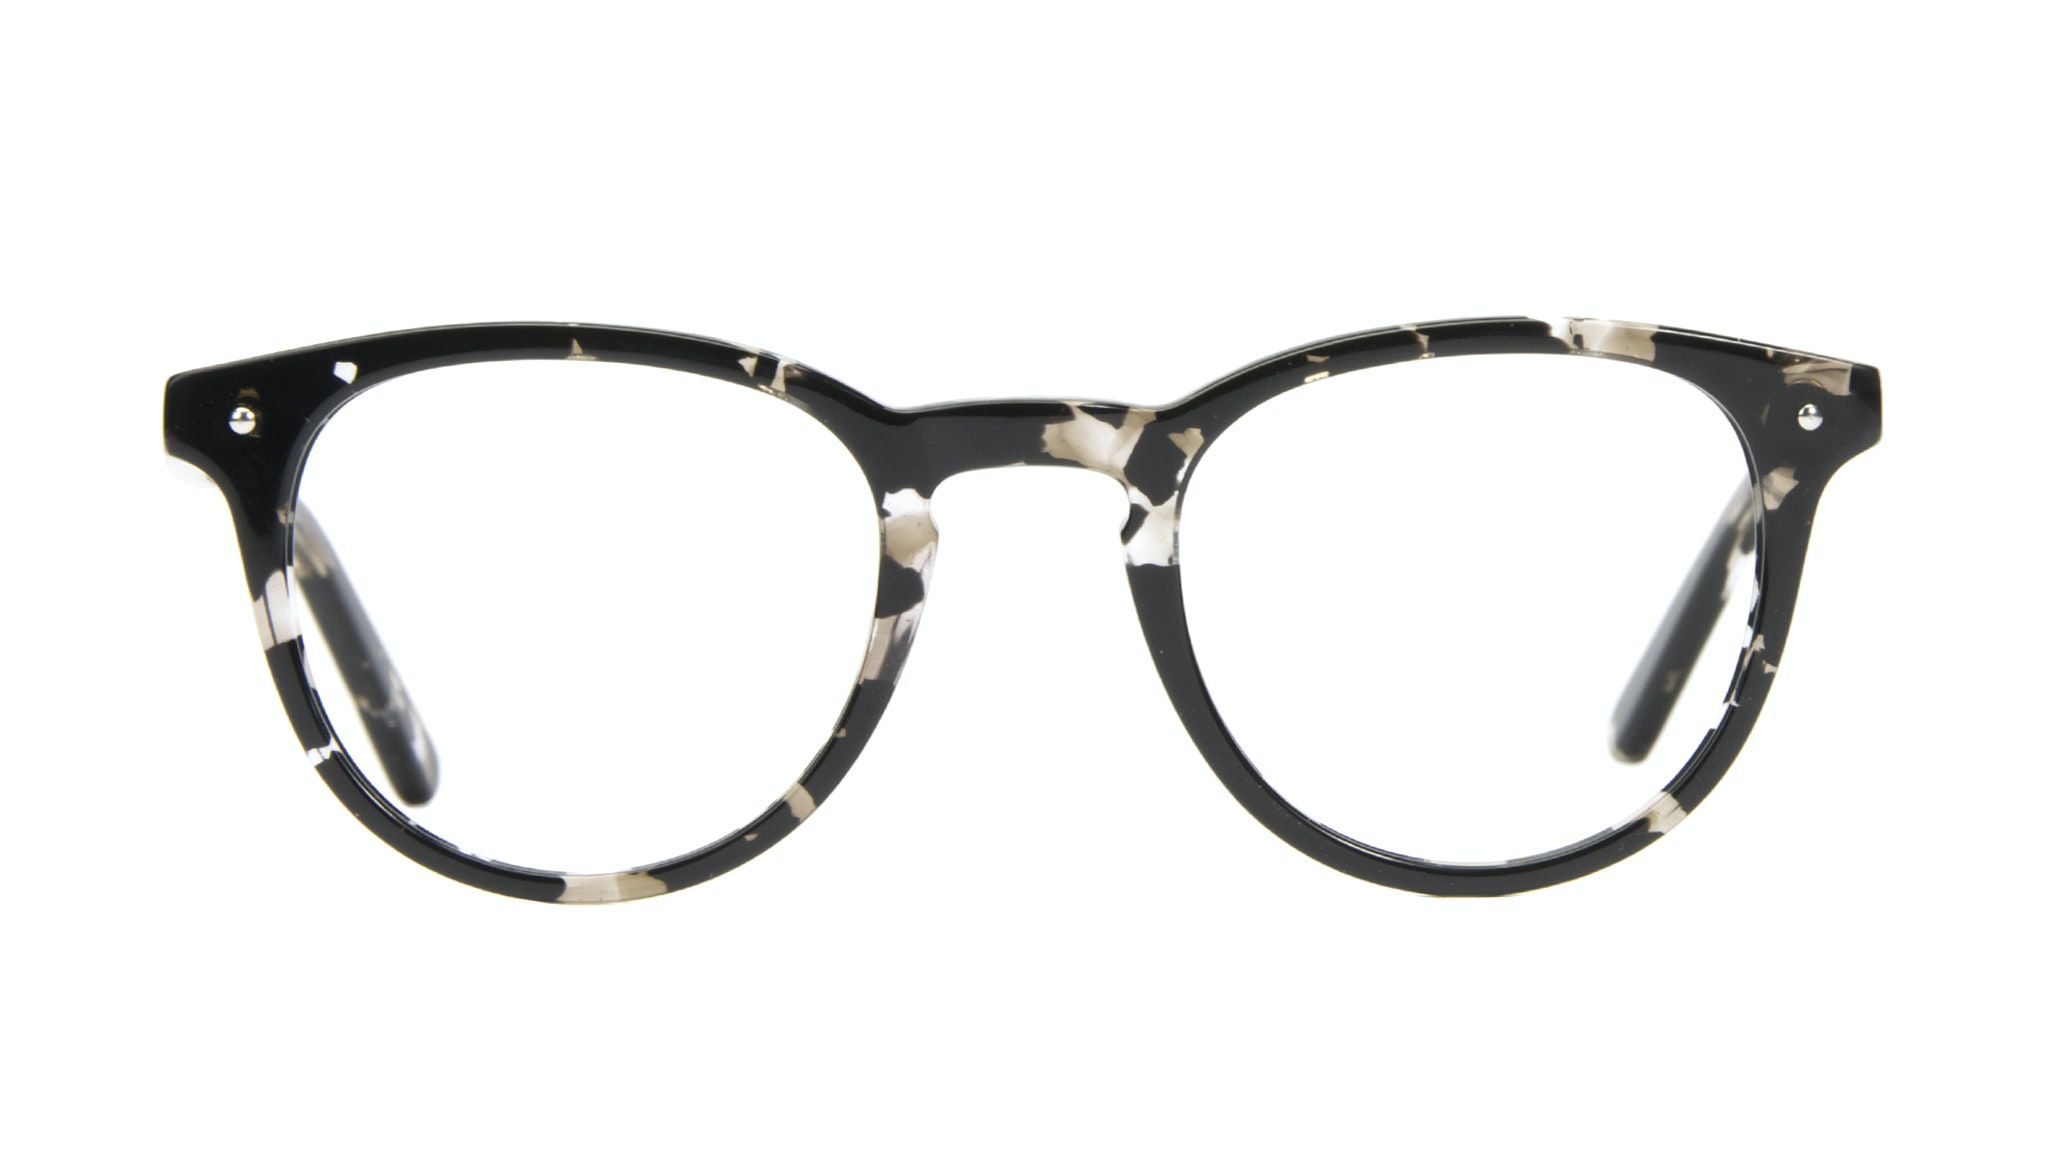 Affordable Fashion Glasses Round Eyeglasses Men Cult Stone